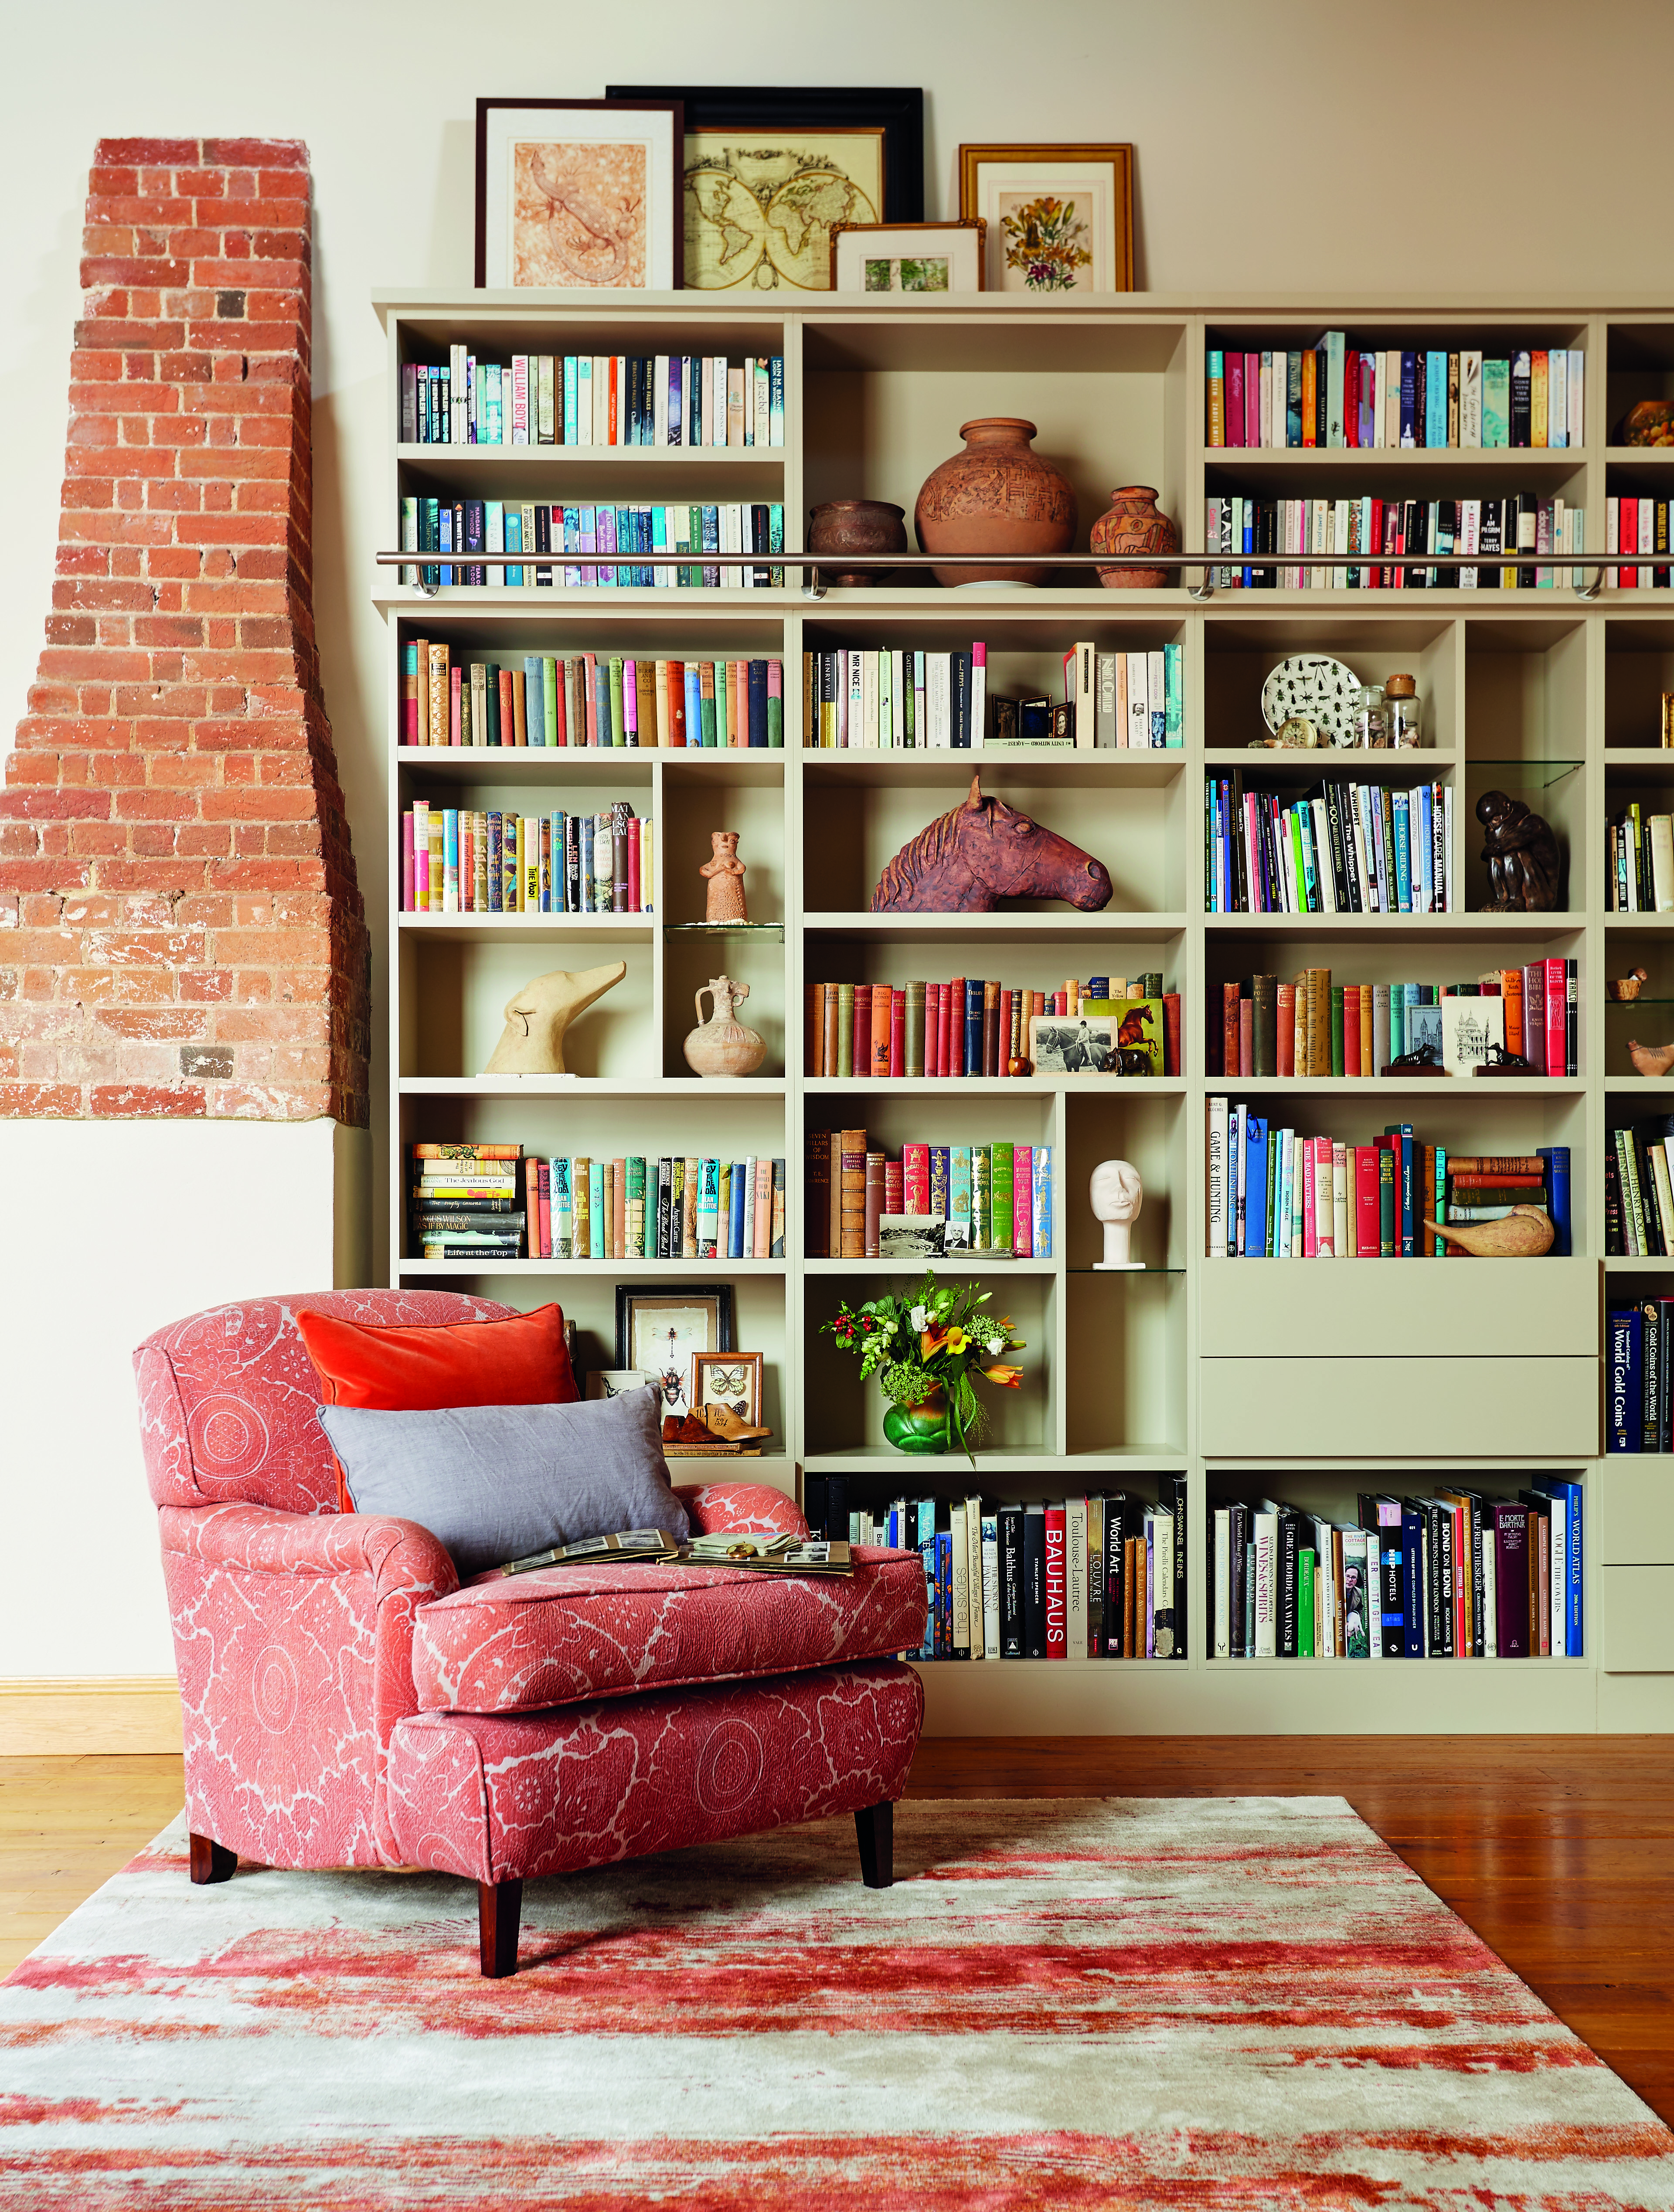 20 Spare Room Ideas From Wfh Spaces To Home Gyms Real Homes